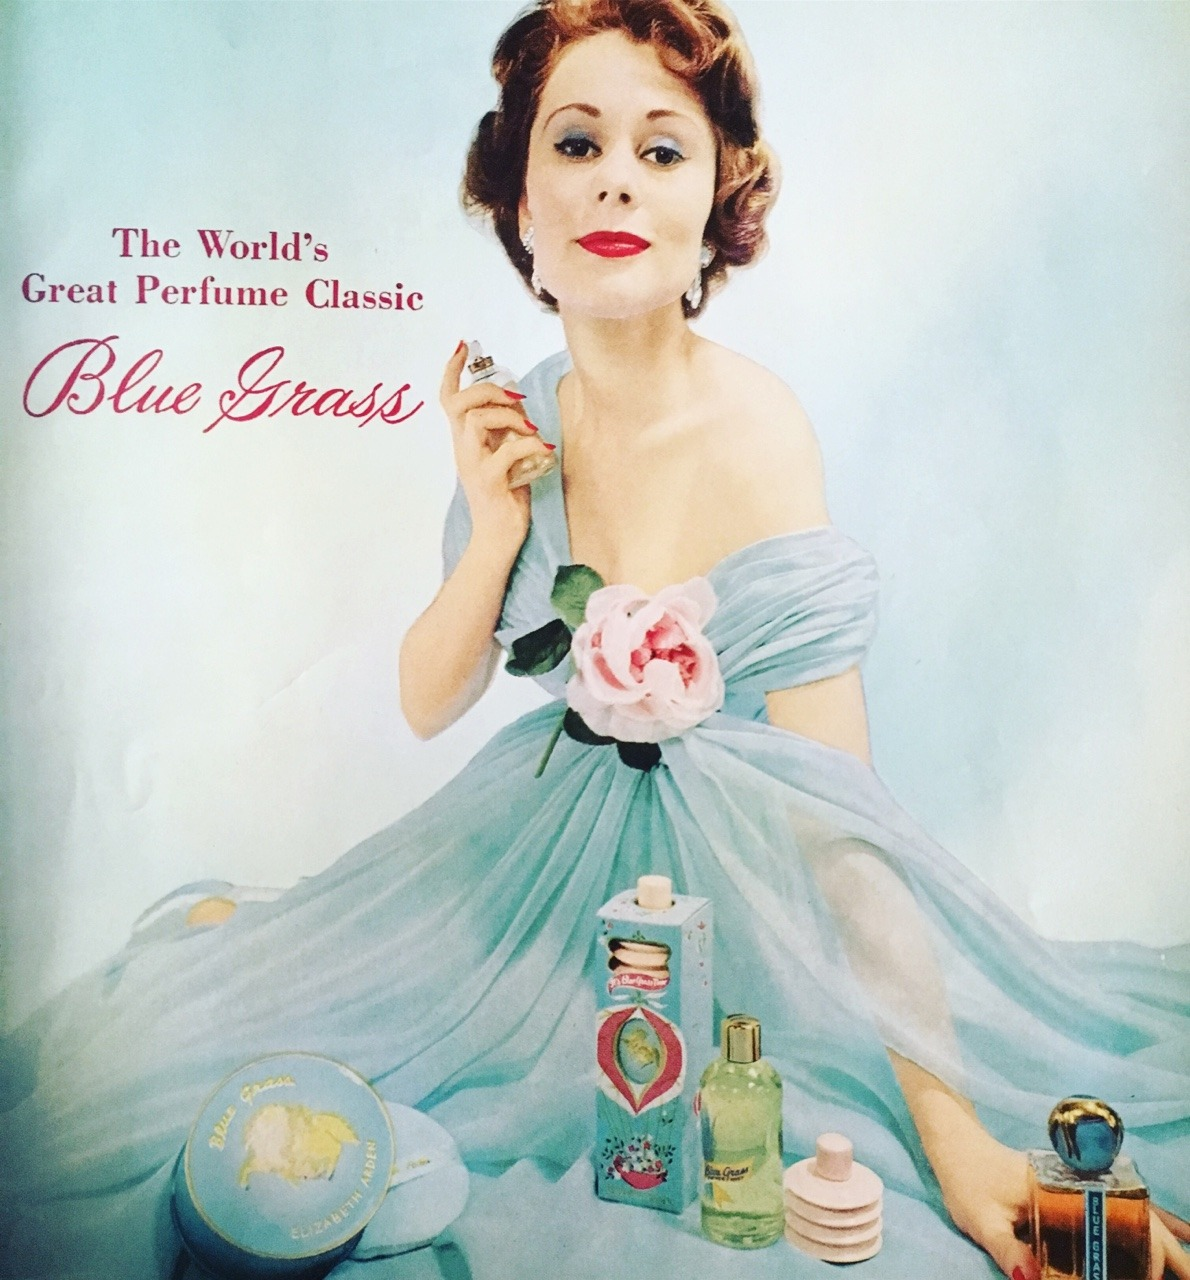 """Blue Grass by Elizabeth Arden.   Vogue. June 1957.     The iconic Blue Grass fragrance was introduced in the 1930's and was inspired by the fields where Arden bred her famous Thoroughbreds. Arden was also famous for her rivalry with fellow self-made cosmetic powerhouse Helena Rubinstein, which has been turned into a new musical on Broadway called """"War Paint."""""""